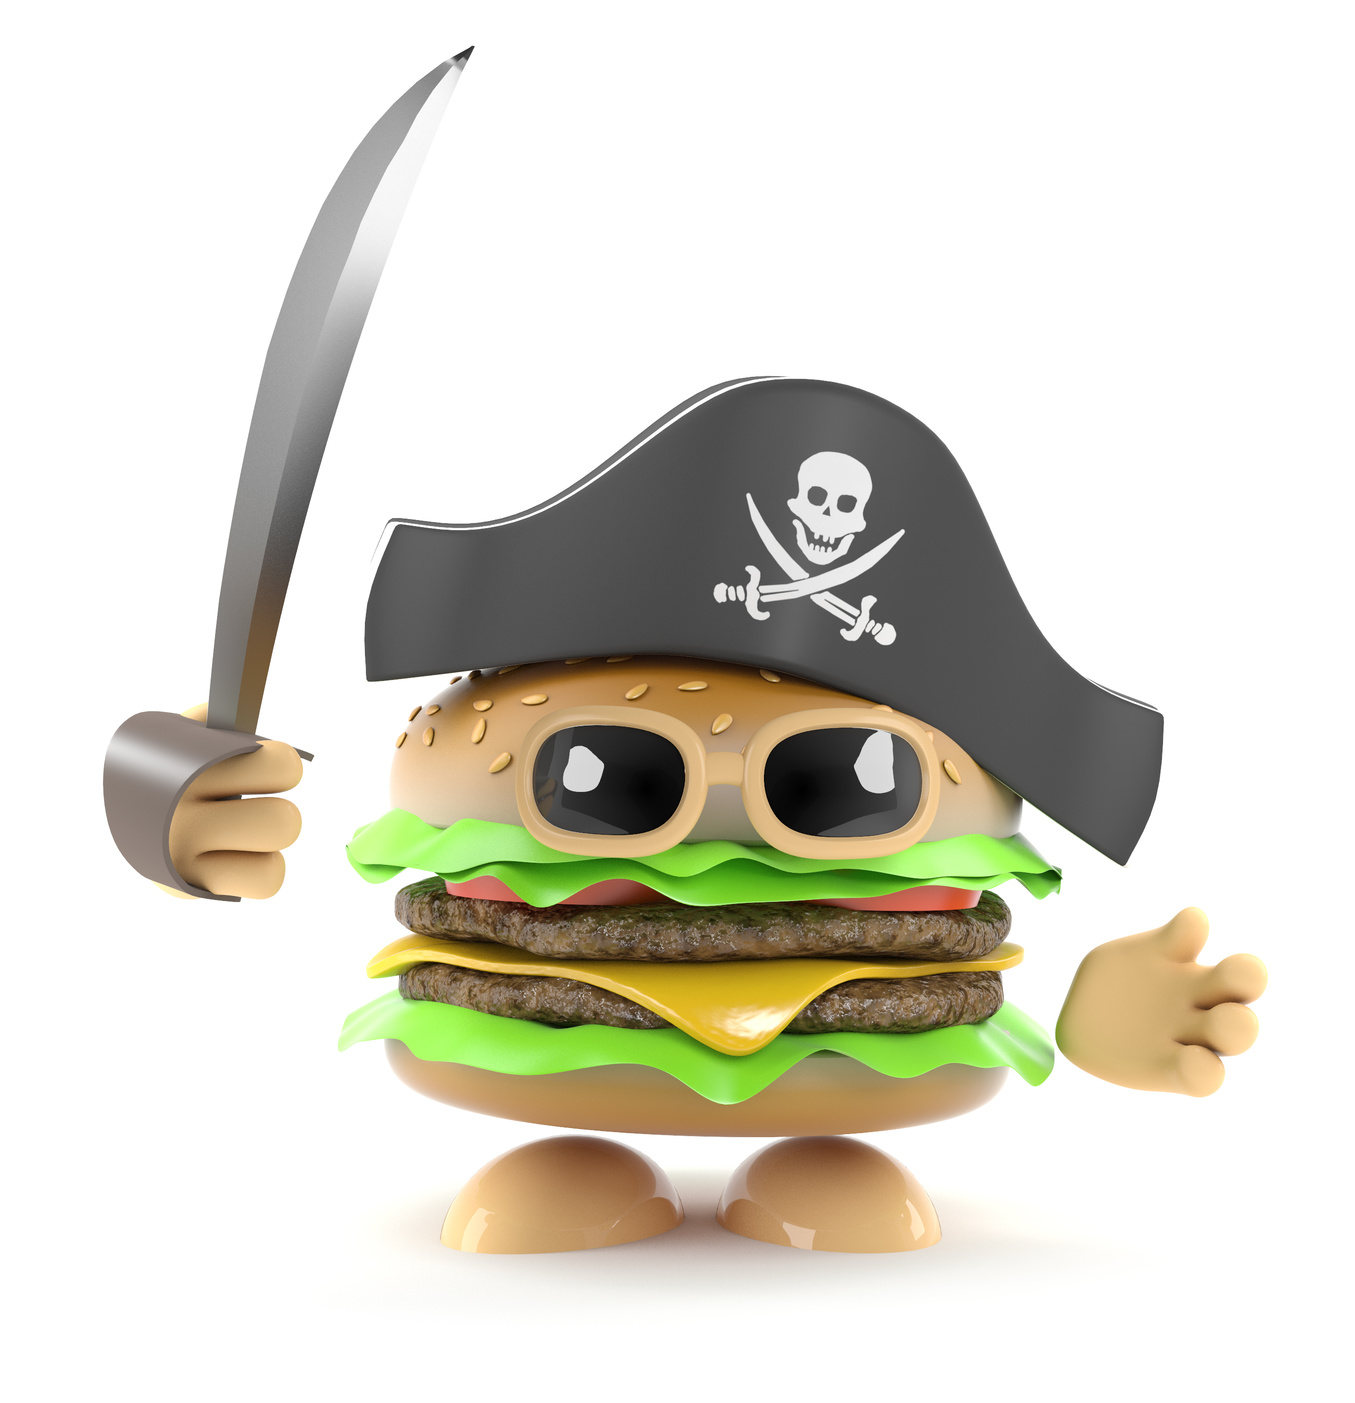 The Burger Pirate By Jack Aged 8 Xtramile Tuition